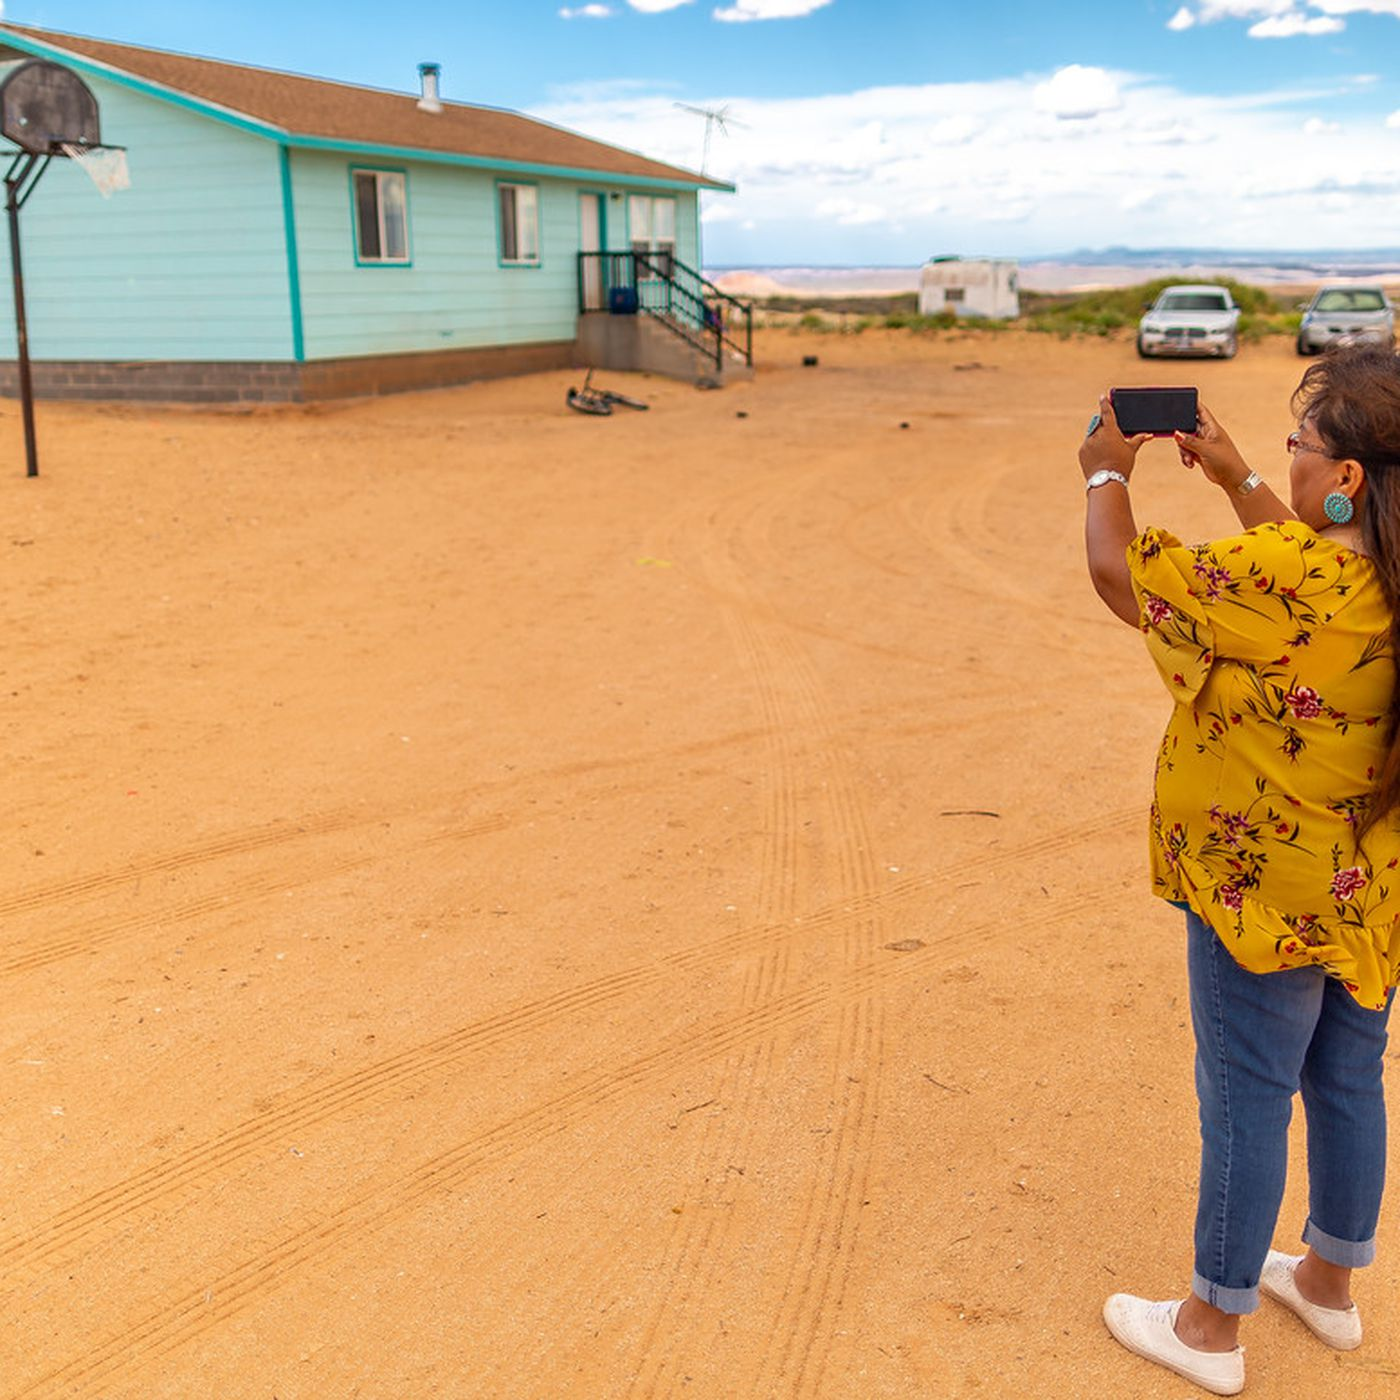 Waiting For 911 Ambulance Drivers Struggle To Find Rural Homes Without Addresses Deseret News For a job as a tourist guide, but i wasn't successful. rural homes without addresses